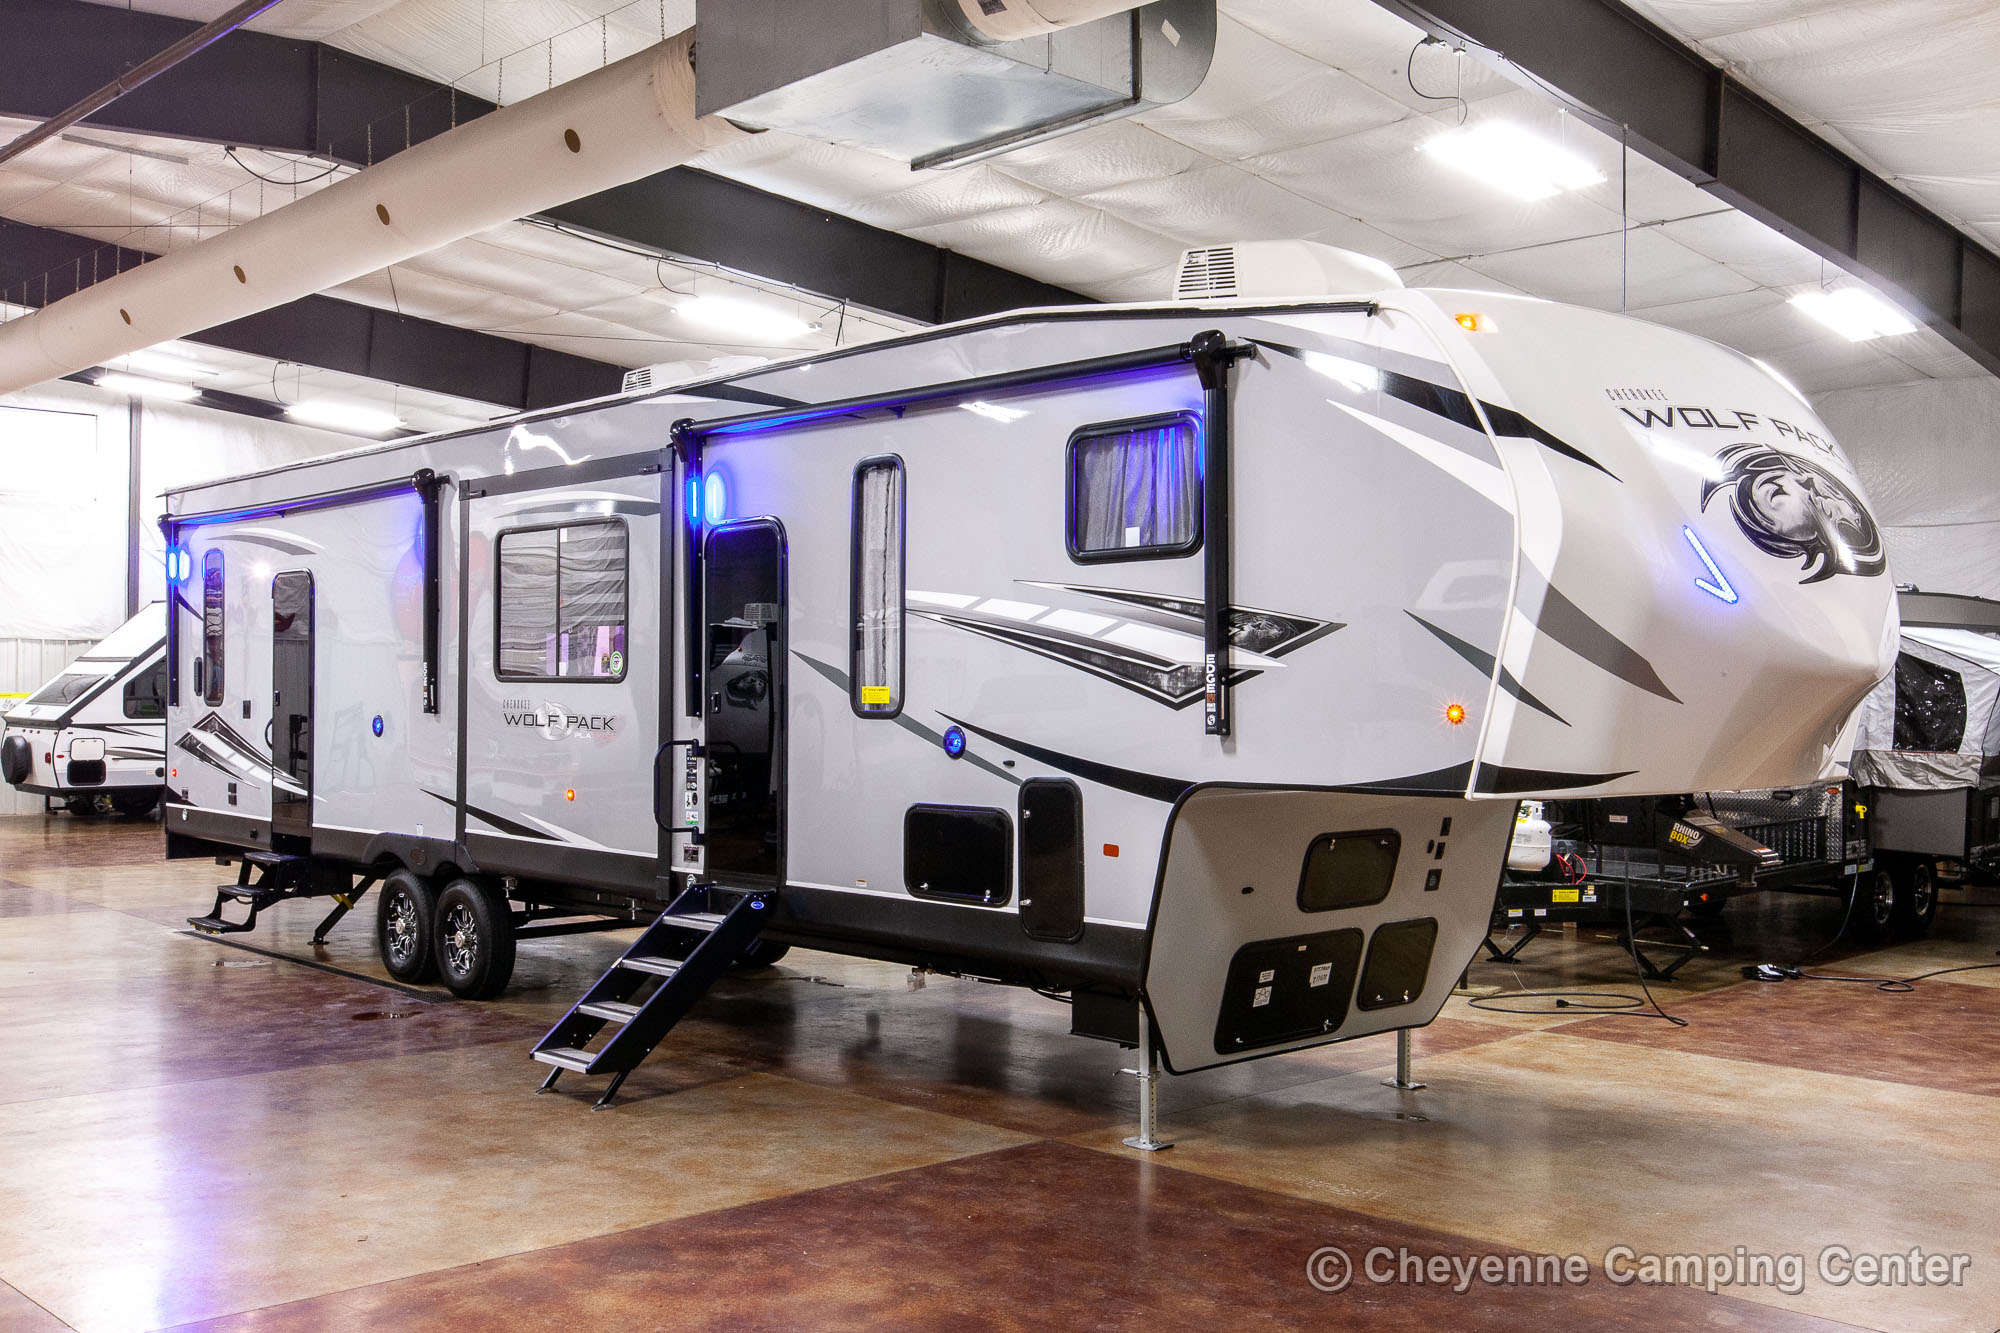 2022 Forest River Cherokee Wolf Pack 355PACK14 Bunkhouse Toy Hauler Fifth Wheel Exterior Image